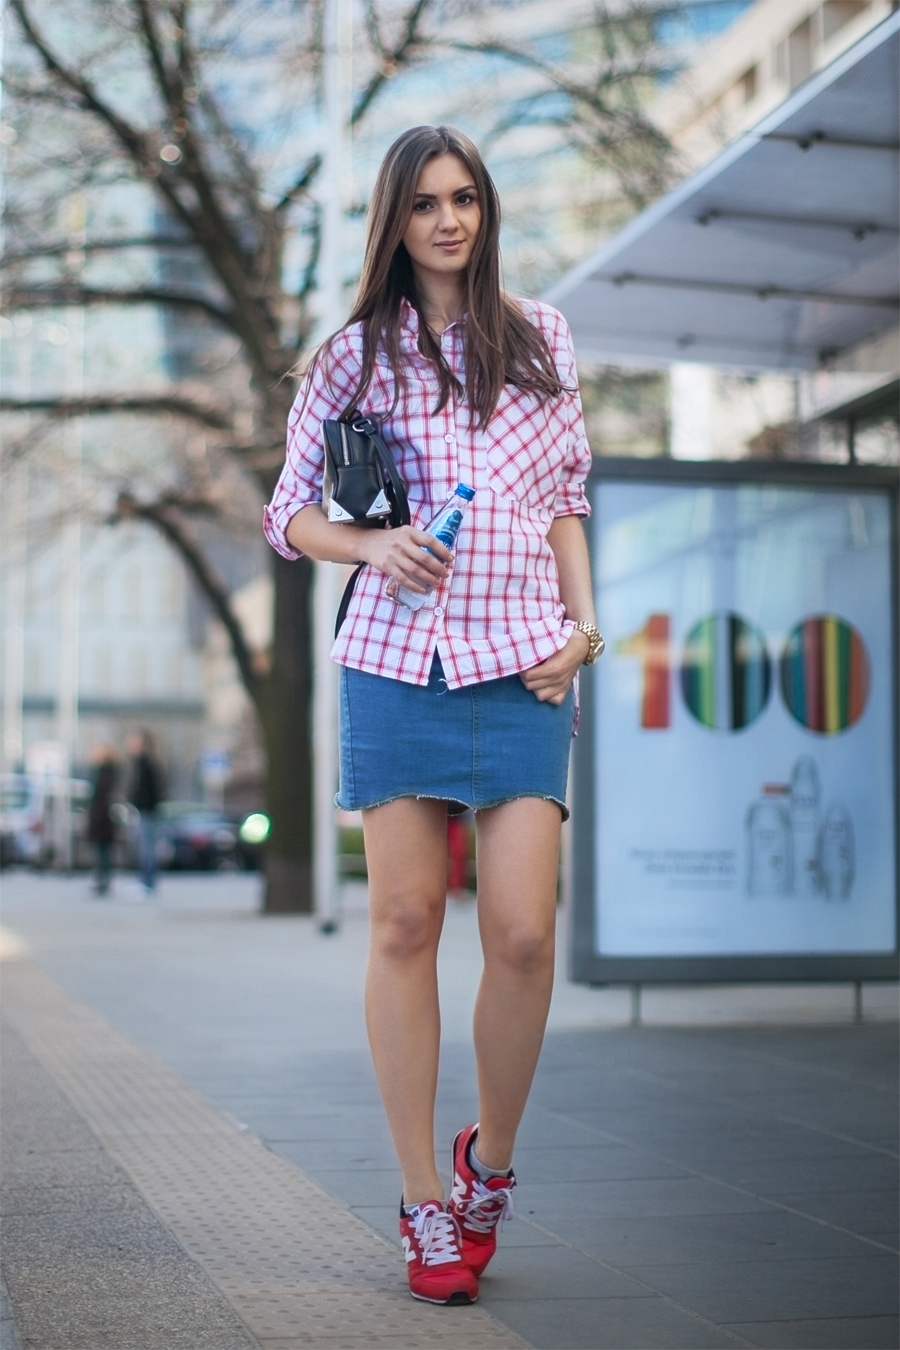 fashion_blog_casual_outfit_checked_shirt_denim_skirt_street_style_streetstyle_blogger_girl_wearing5